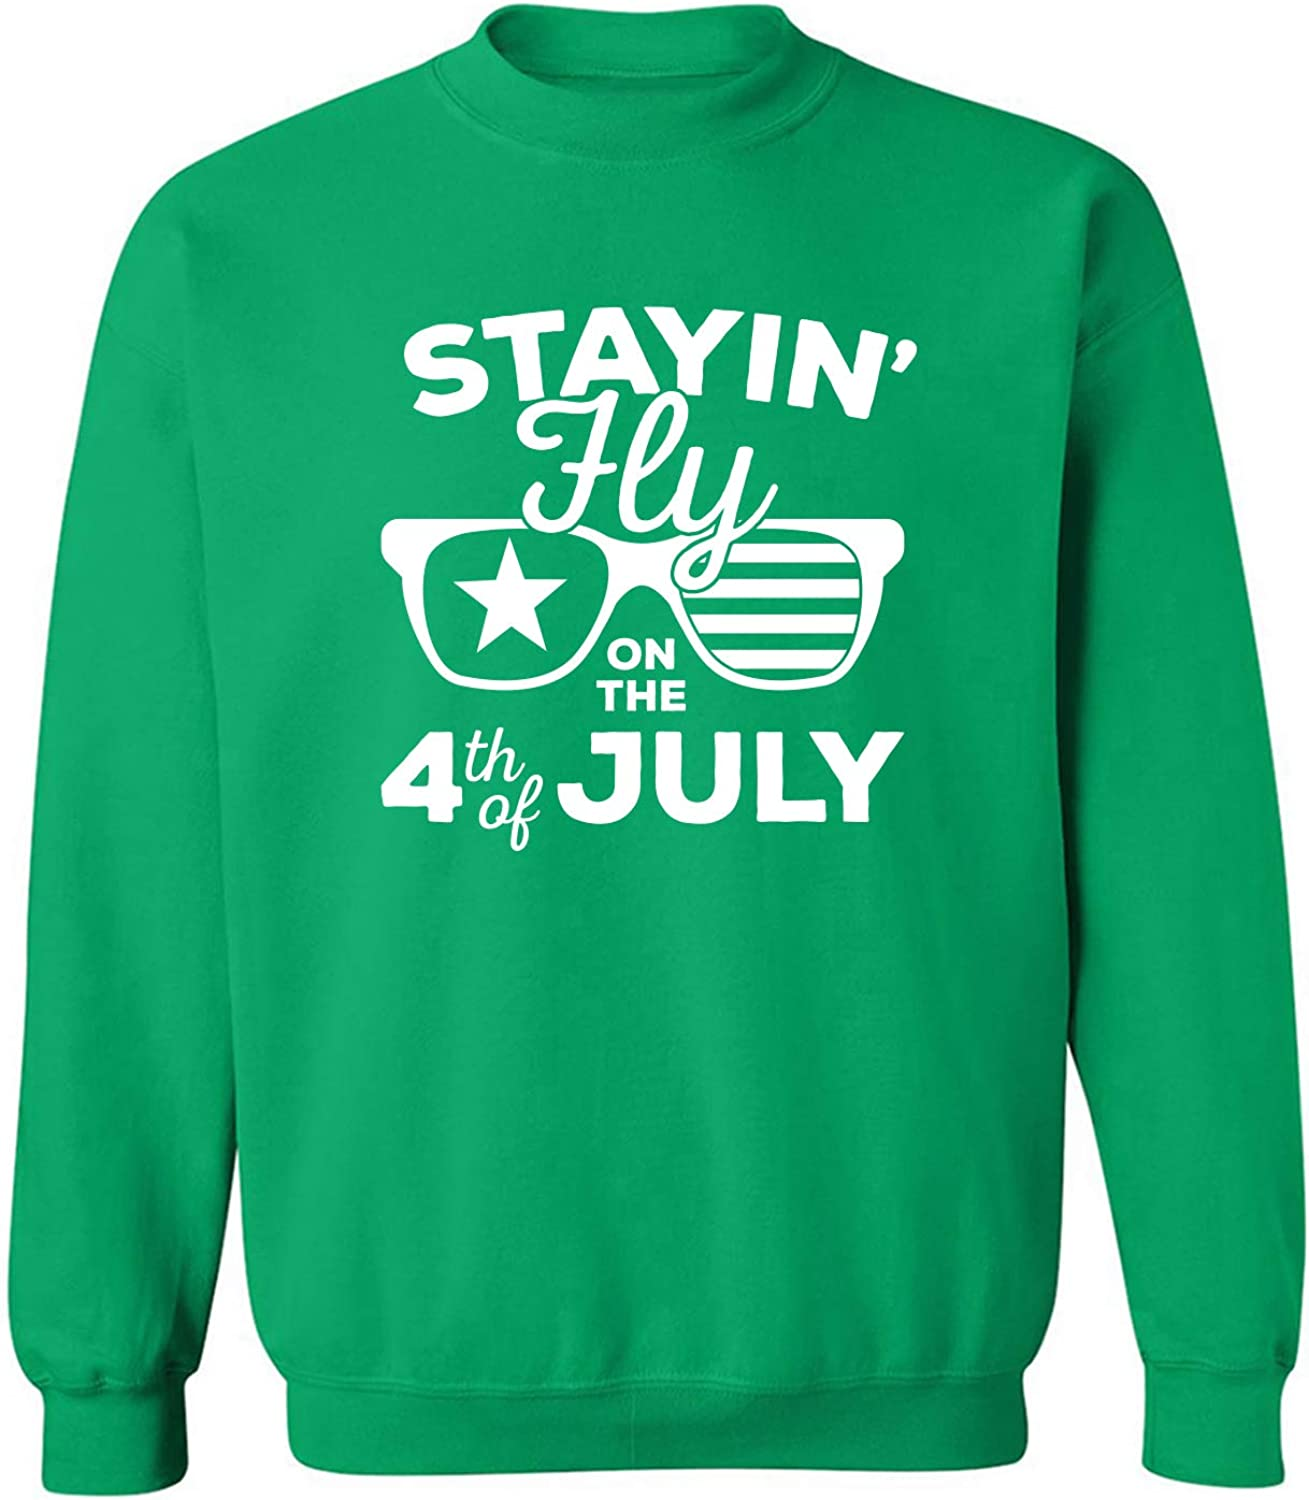 Staying Fly On The 4th of July Crewneck Sweatshirt